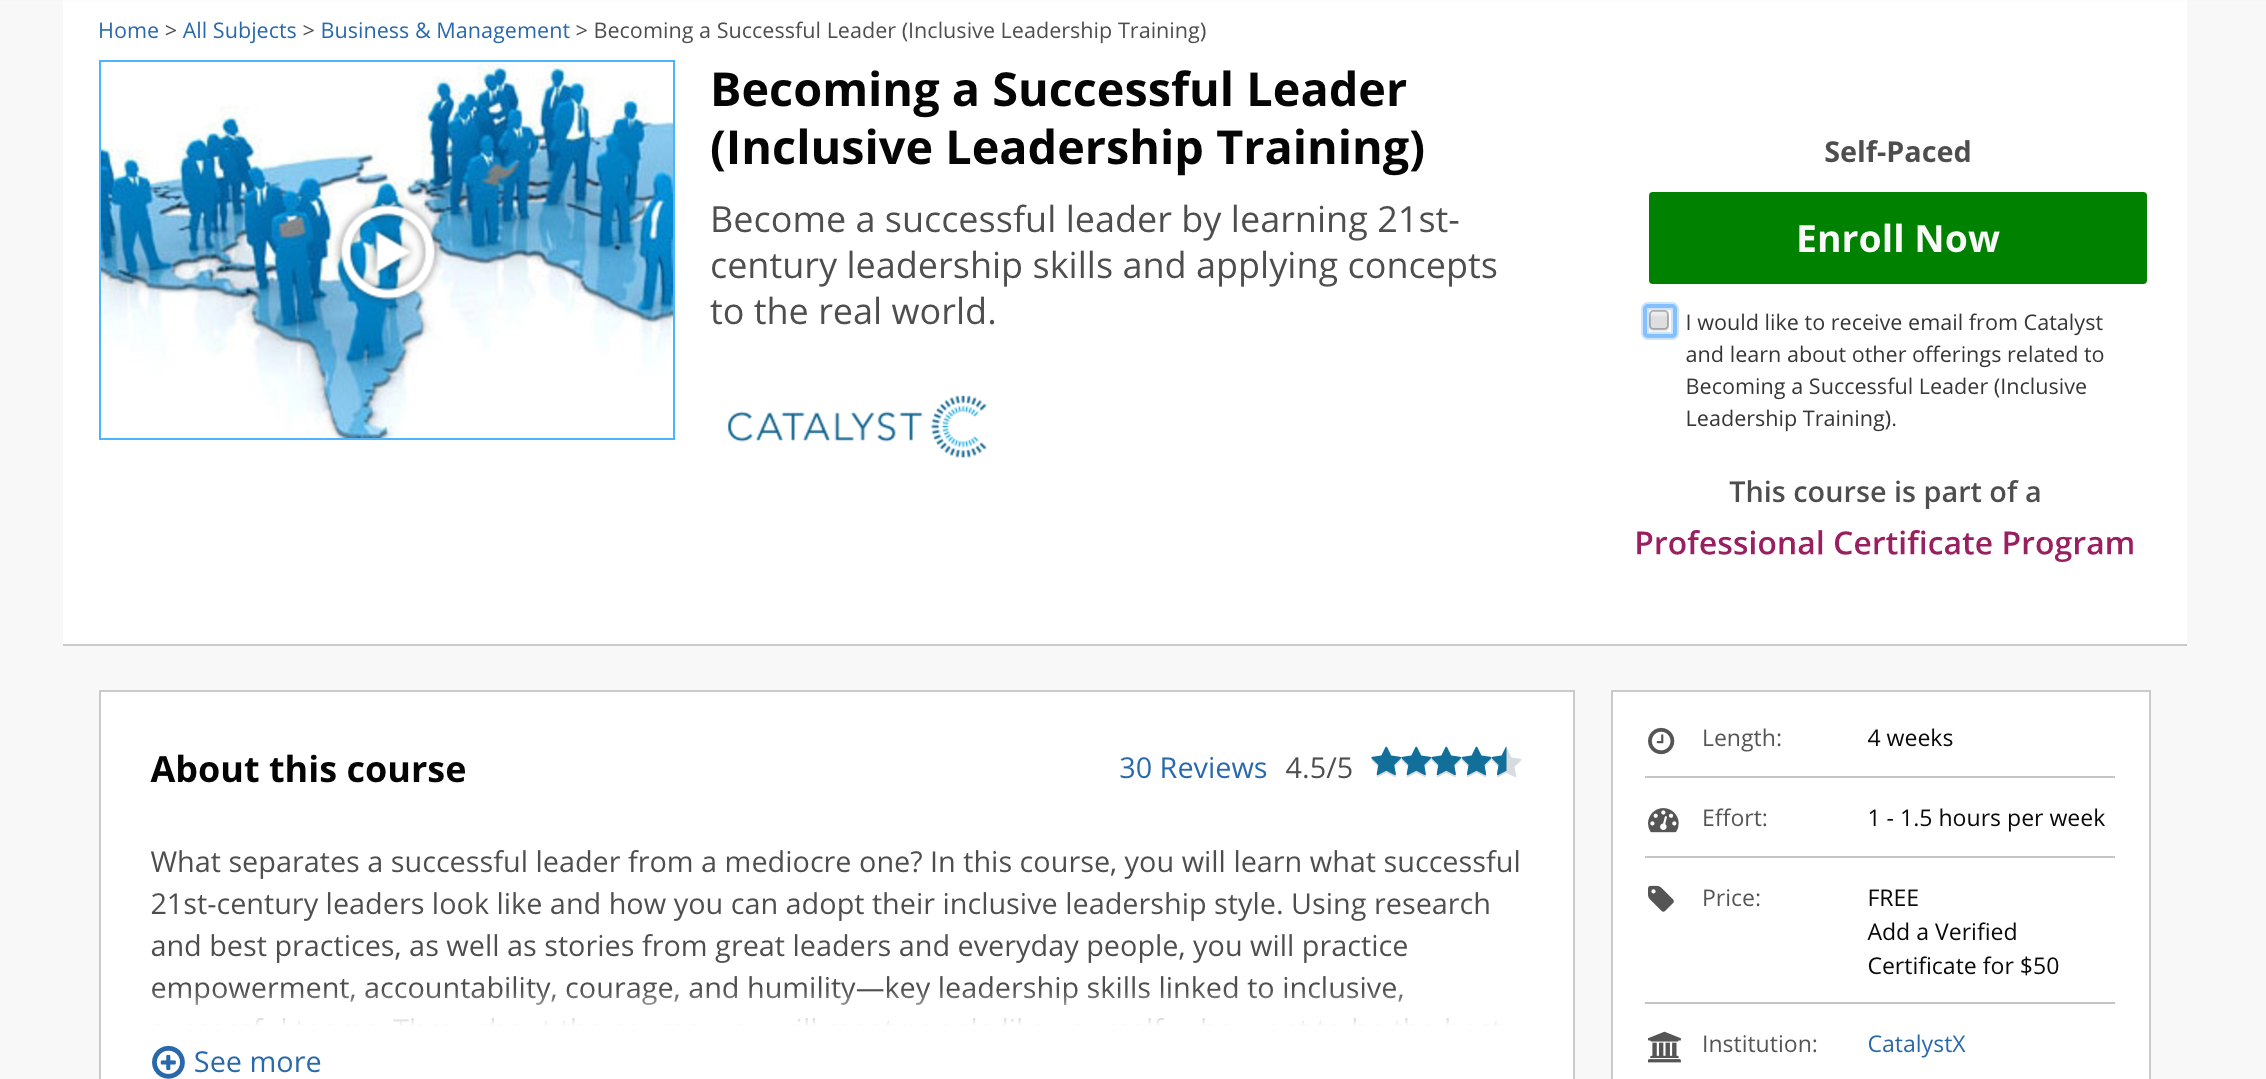 11 online classes to improve interpersonal skills the muse inclusive leadership training becoming a successful leader xflitez Images